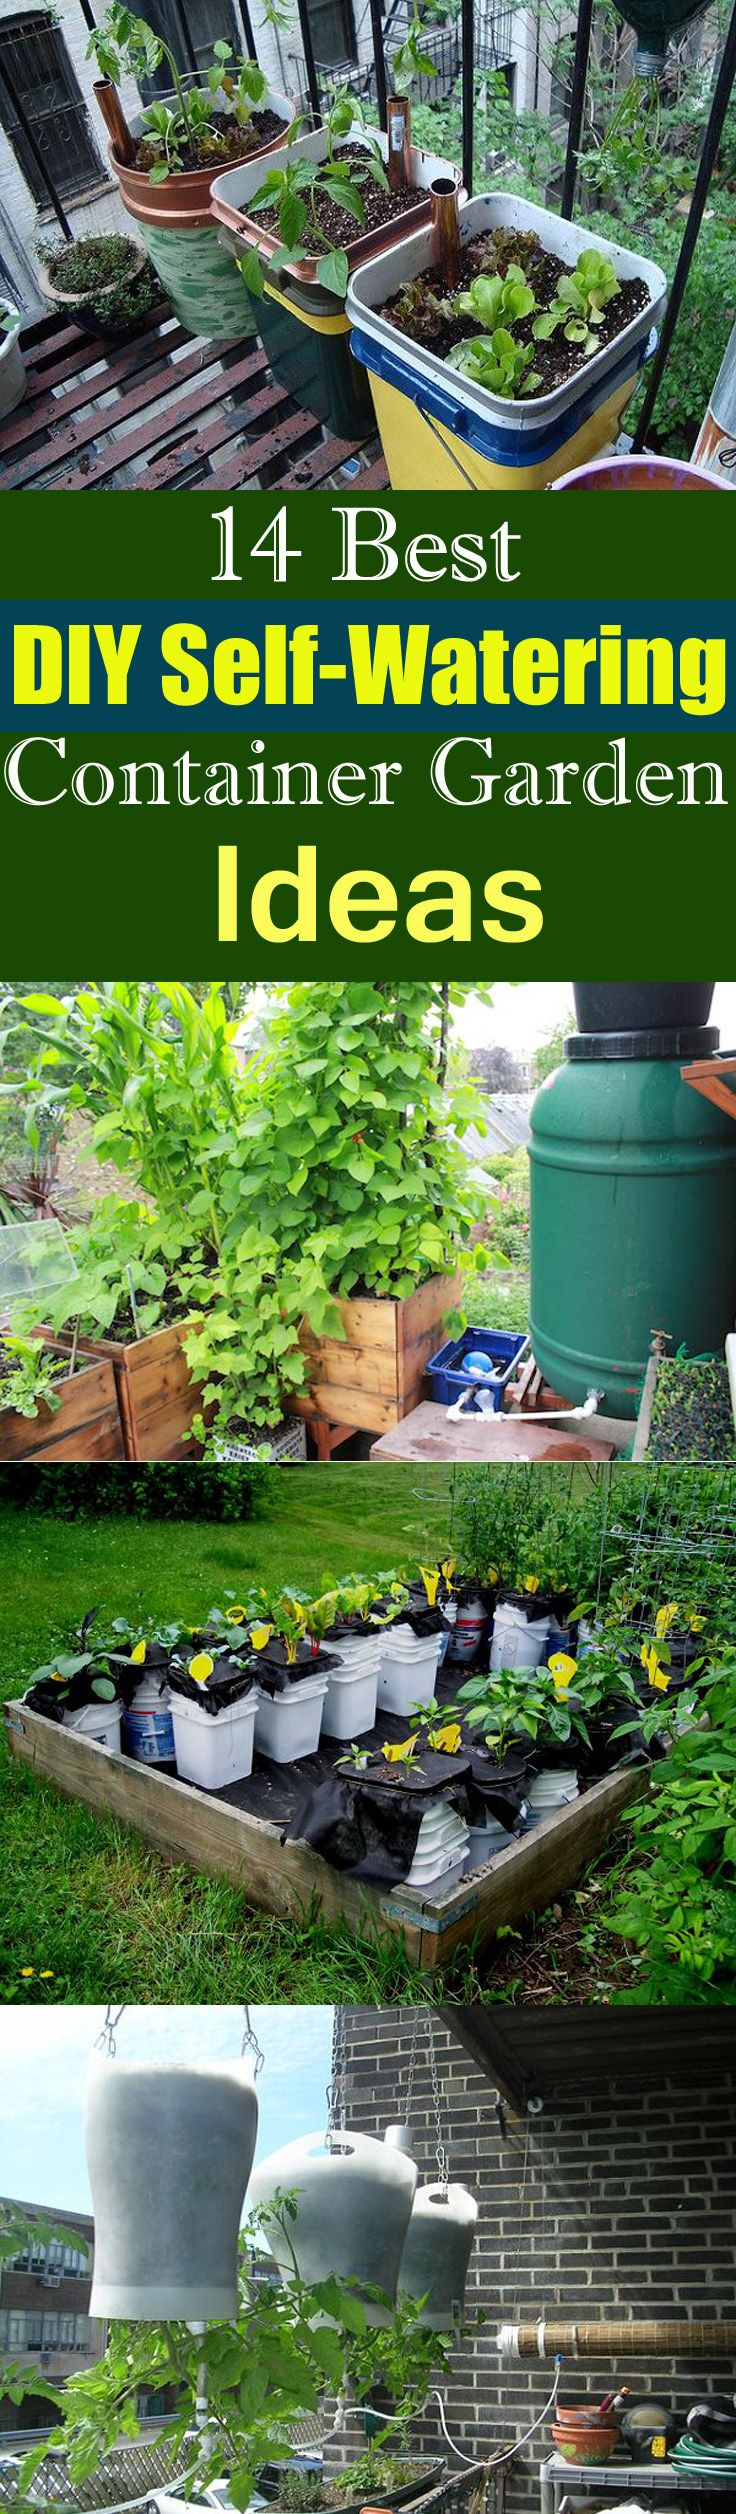 If you forget to water your plants due to a busy schedule, check out some of the best DIY self-watering container garden ideas.